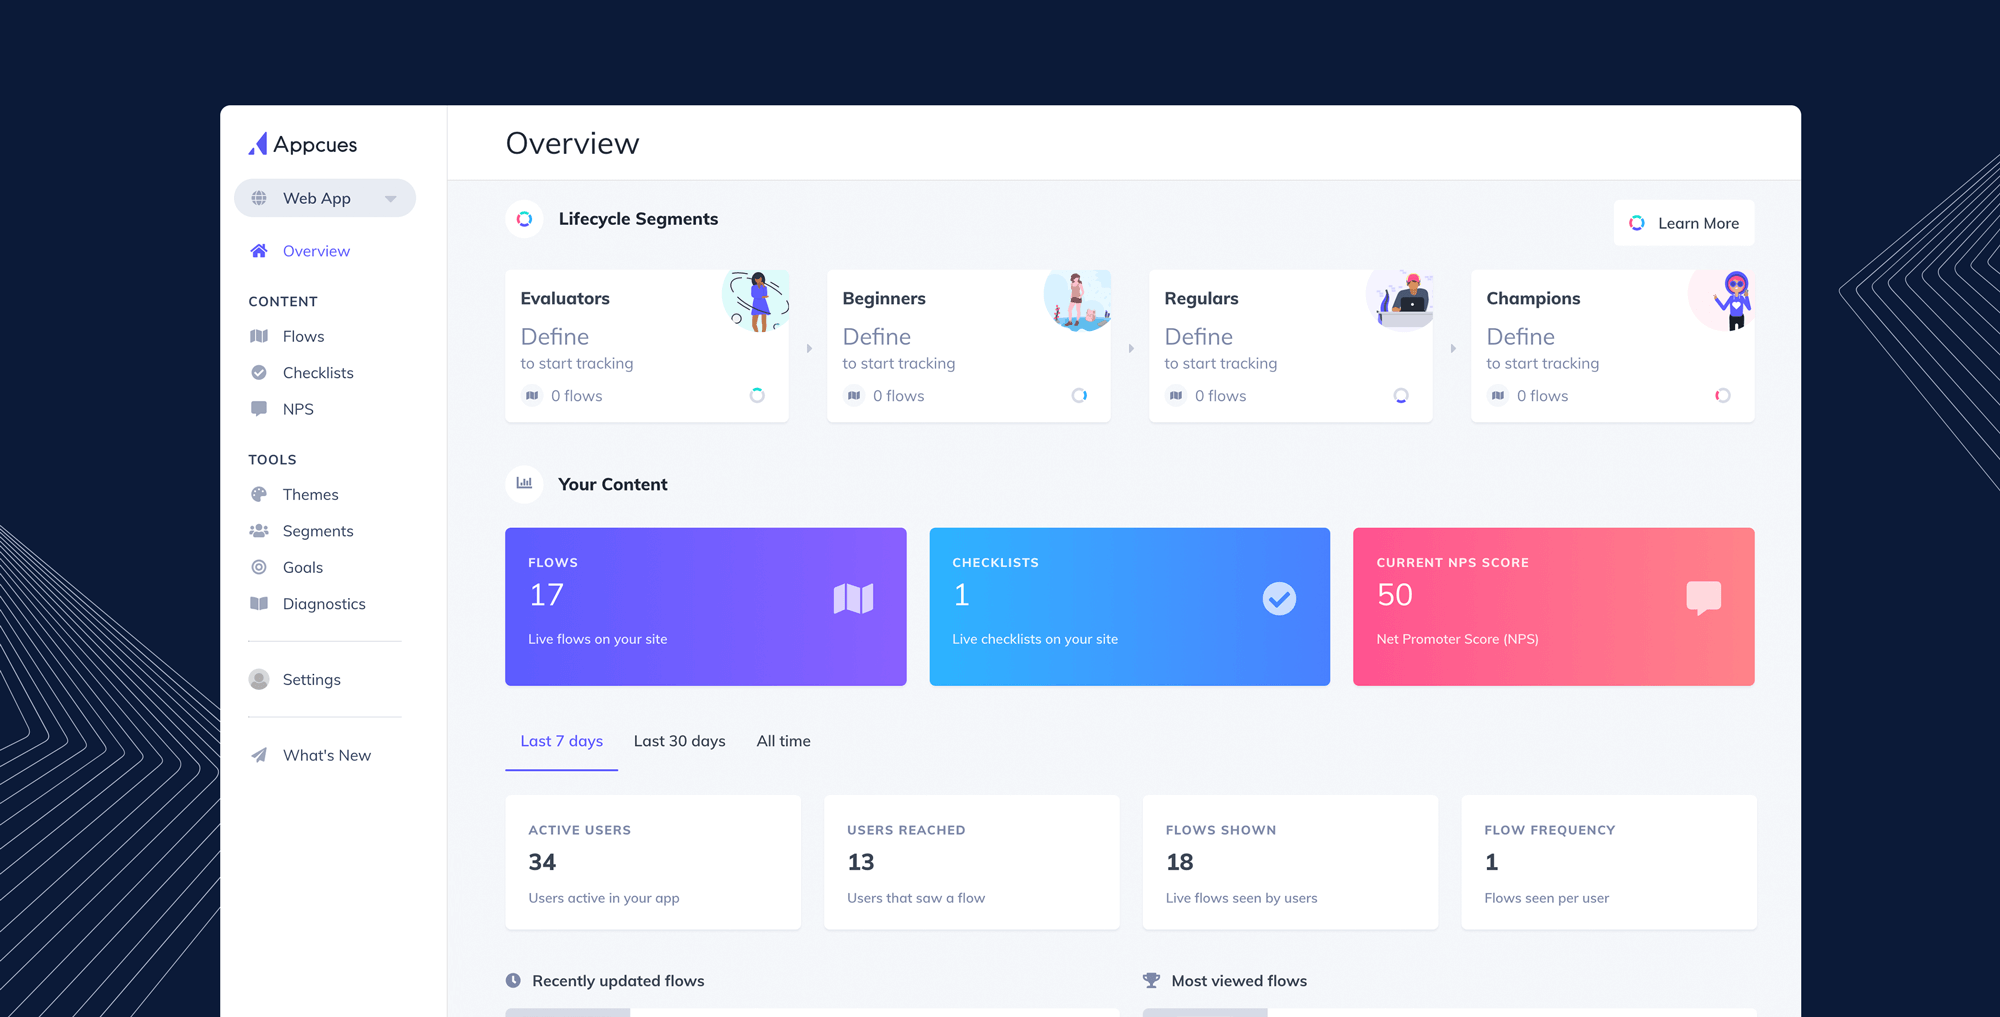 Introducing the Appcues Product-Led Growth Platform